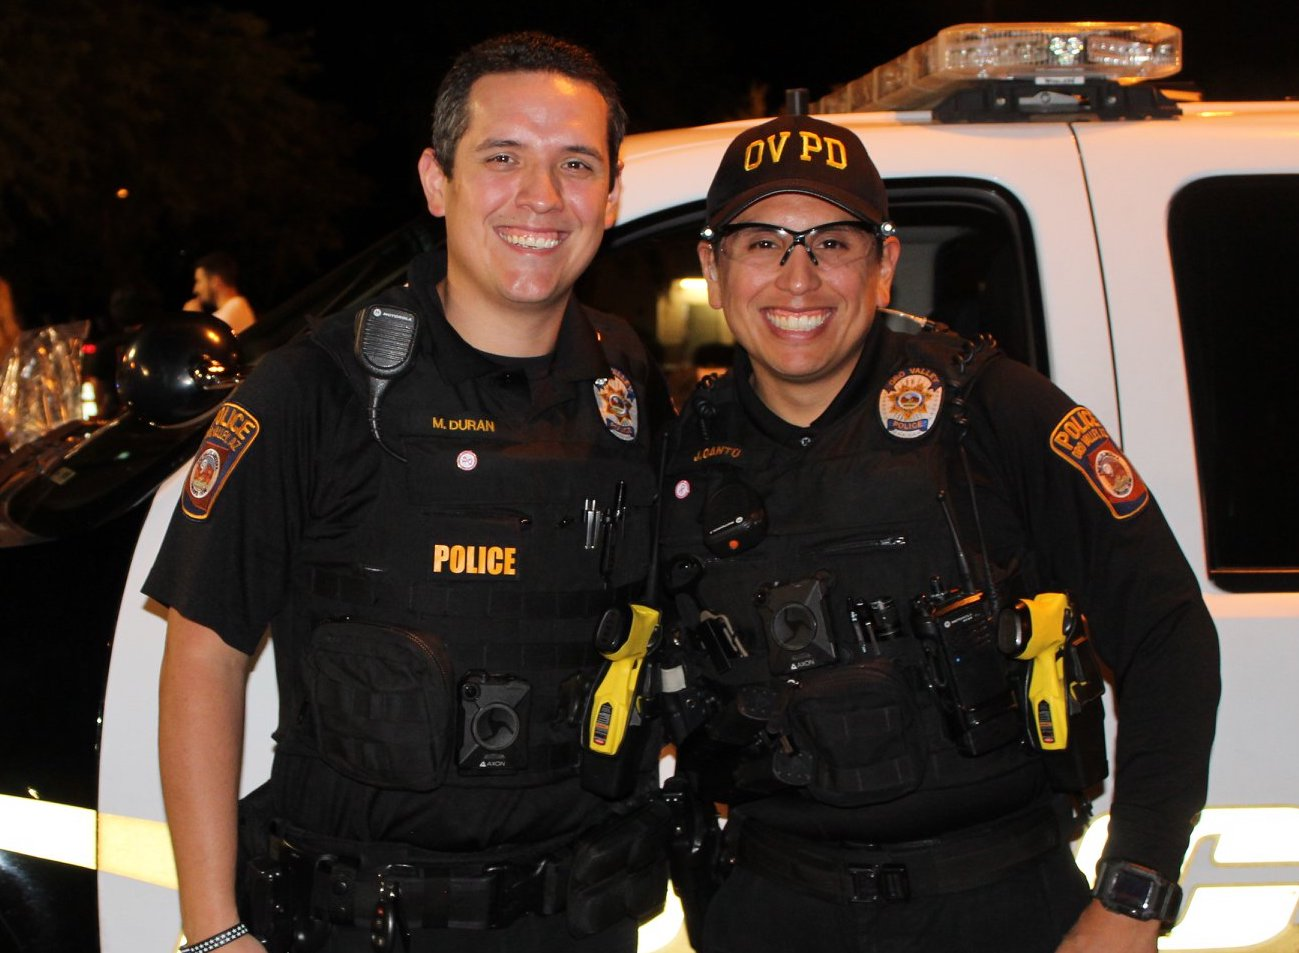 Two police officers wearing body cameras